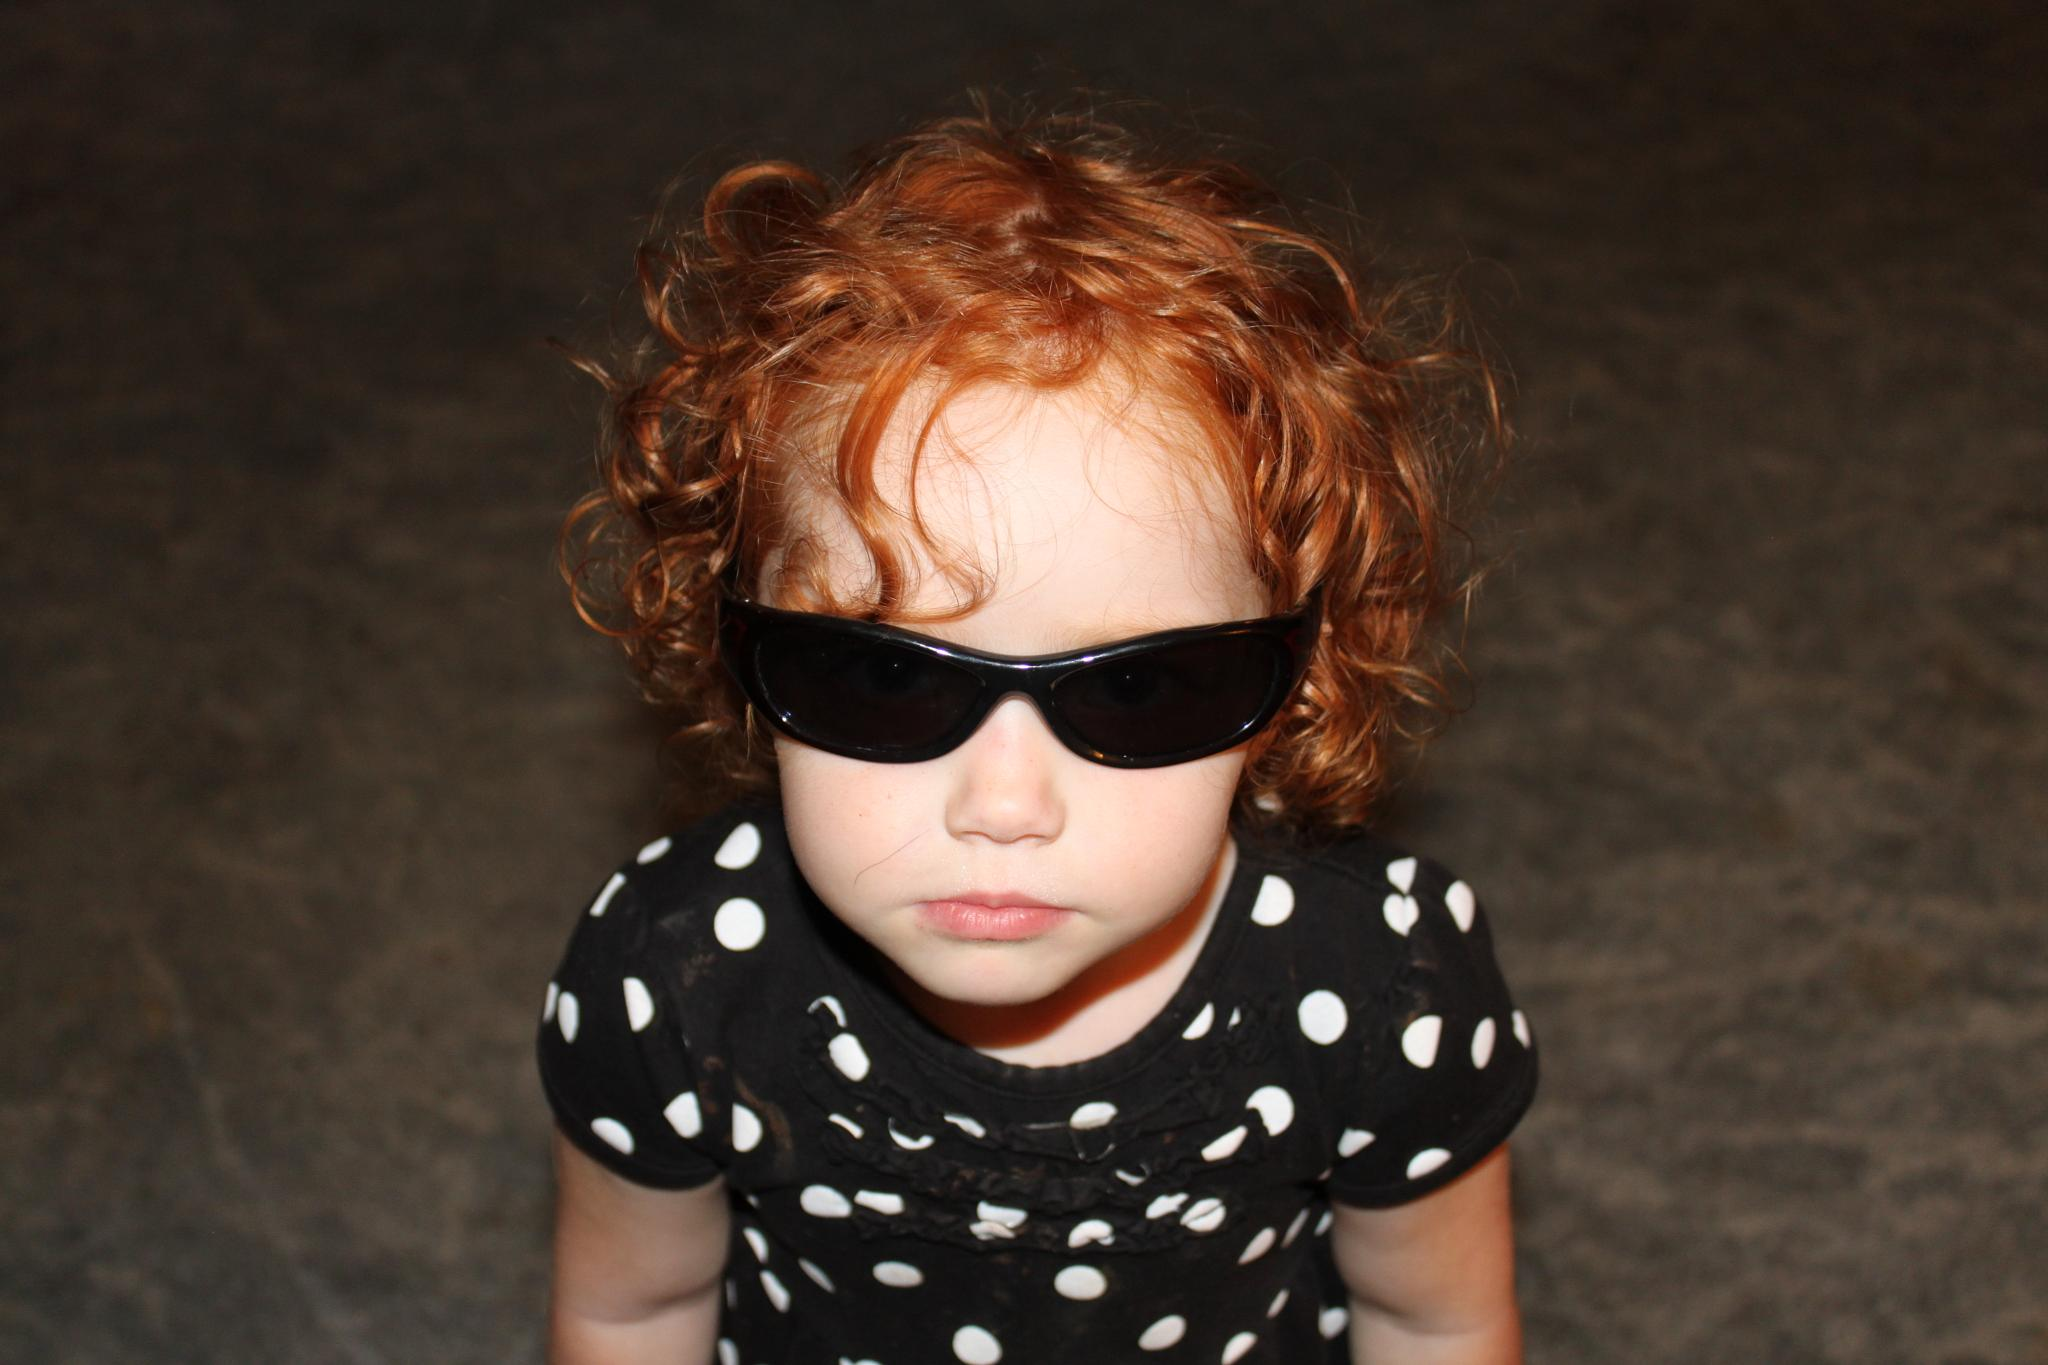 You Can't See What I'm Thinking Behind These Sunglasses by Kindra Schuler